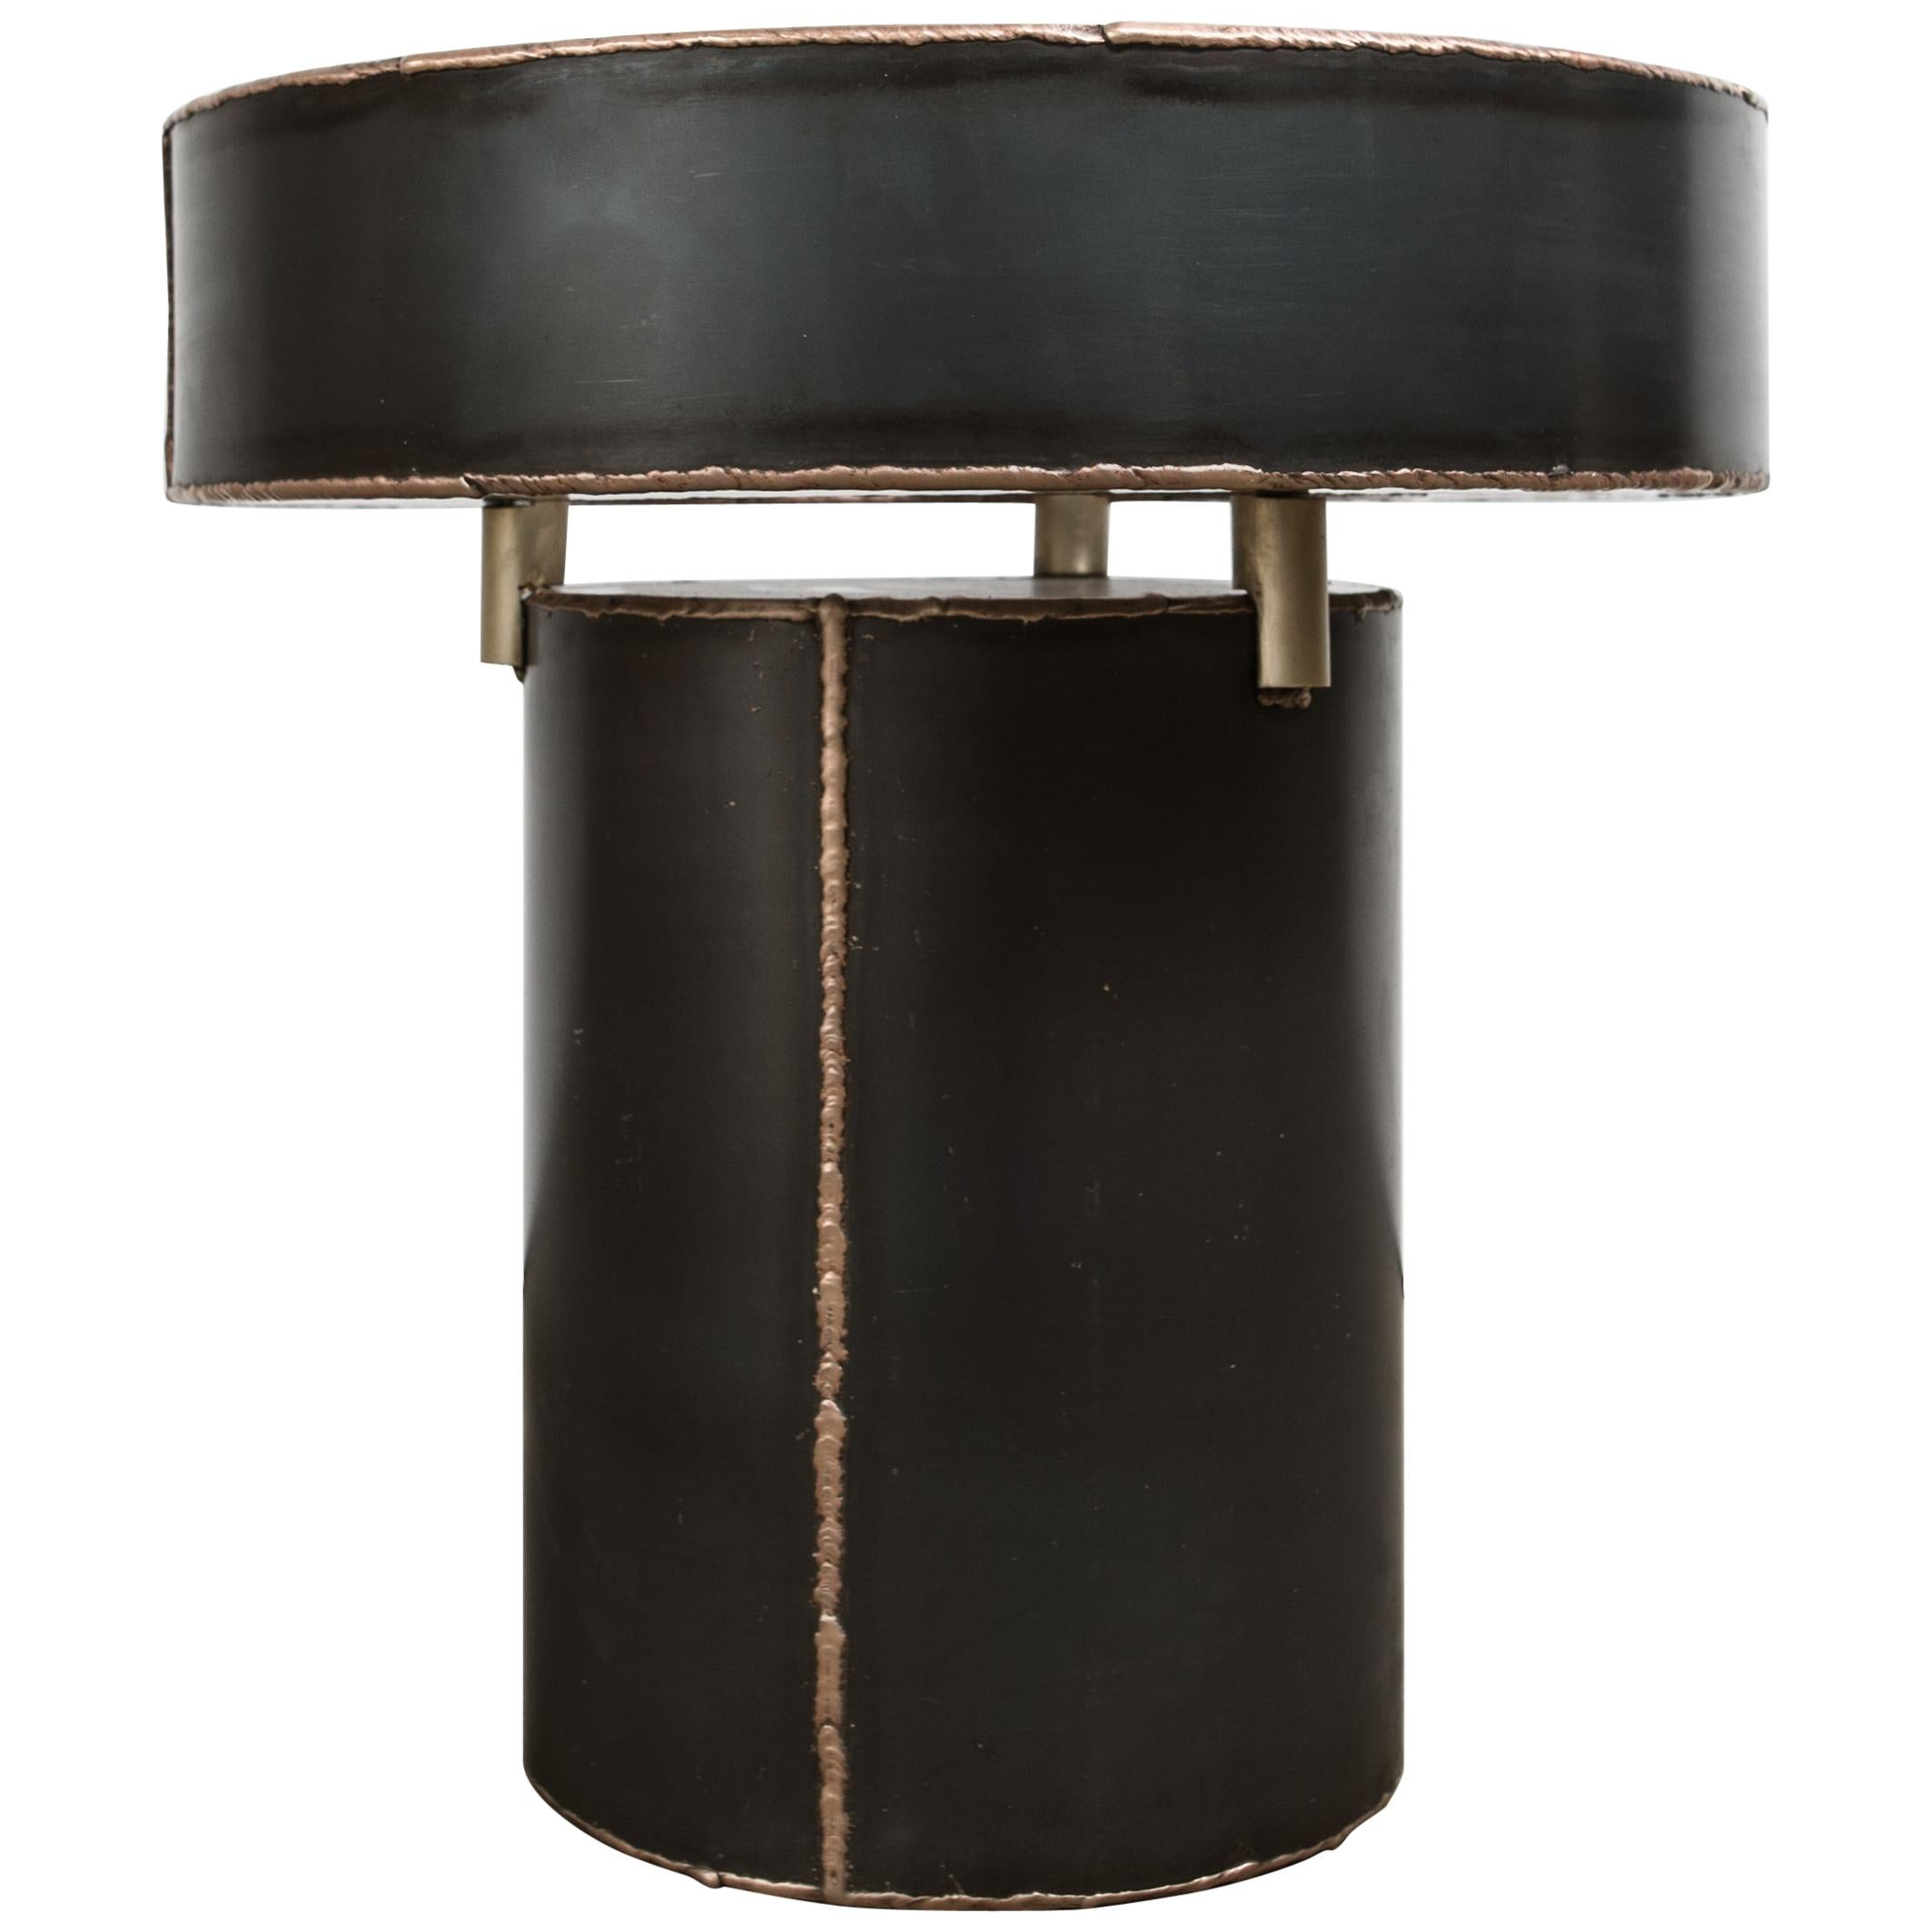 Sentric Side Table in Raw Black Steel and Bronze Seam, by Mtharu